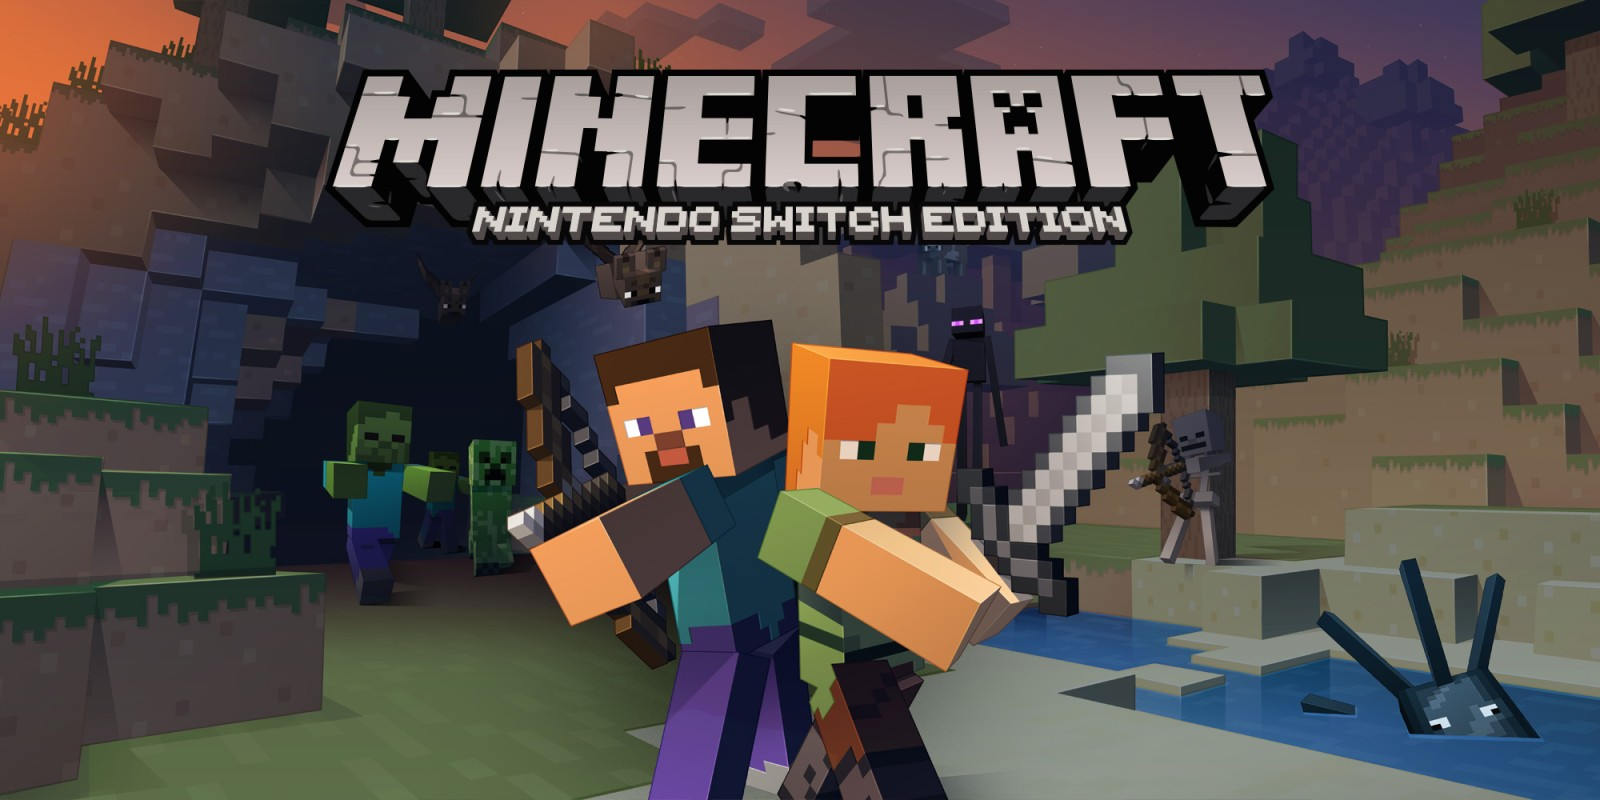 Minecraft Nintendo Switch Edition Nintendo Switch Spiele Nintendo - Minecraft spielen gratis deutsch